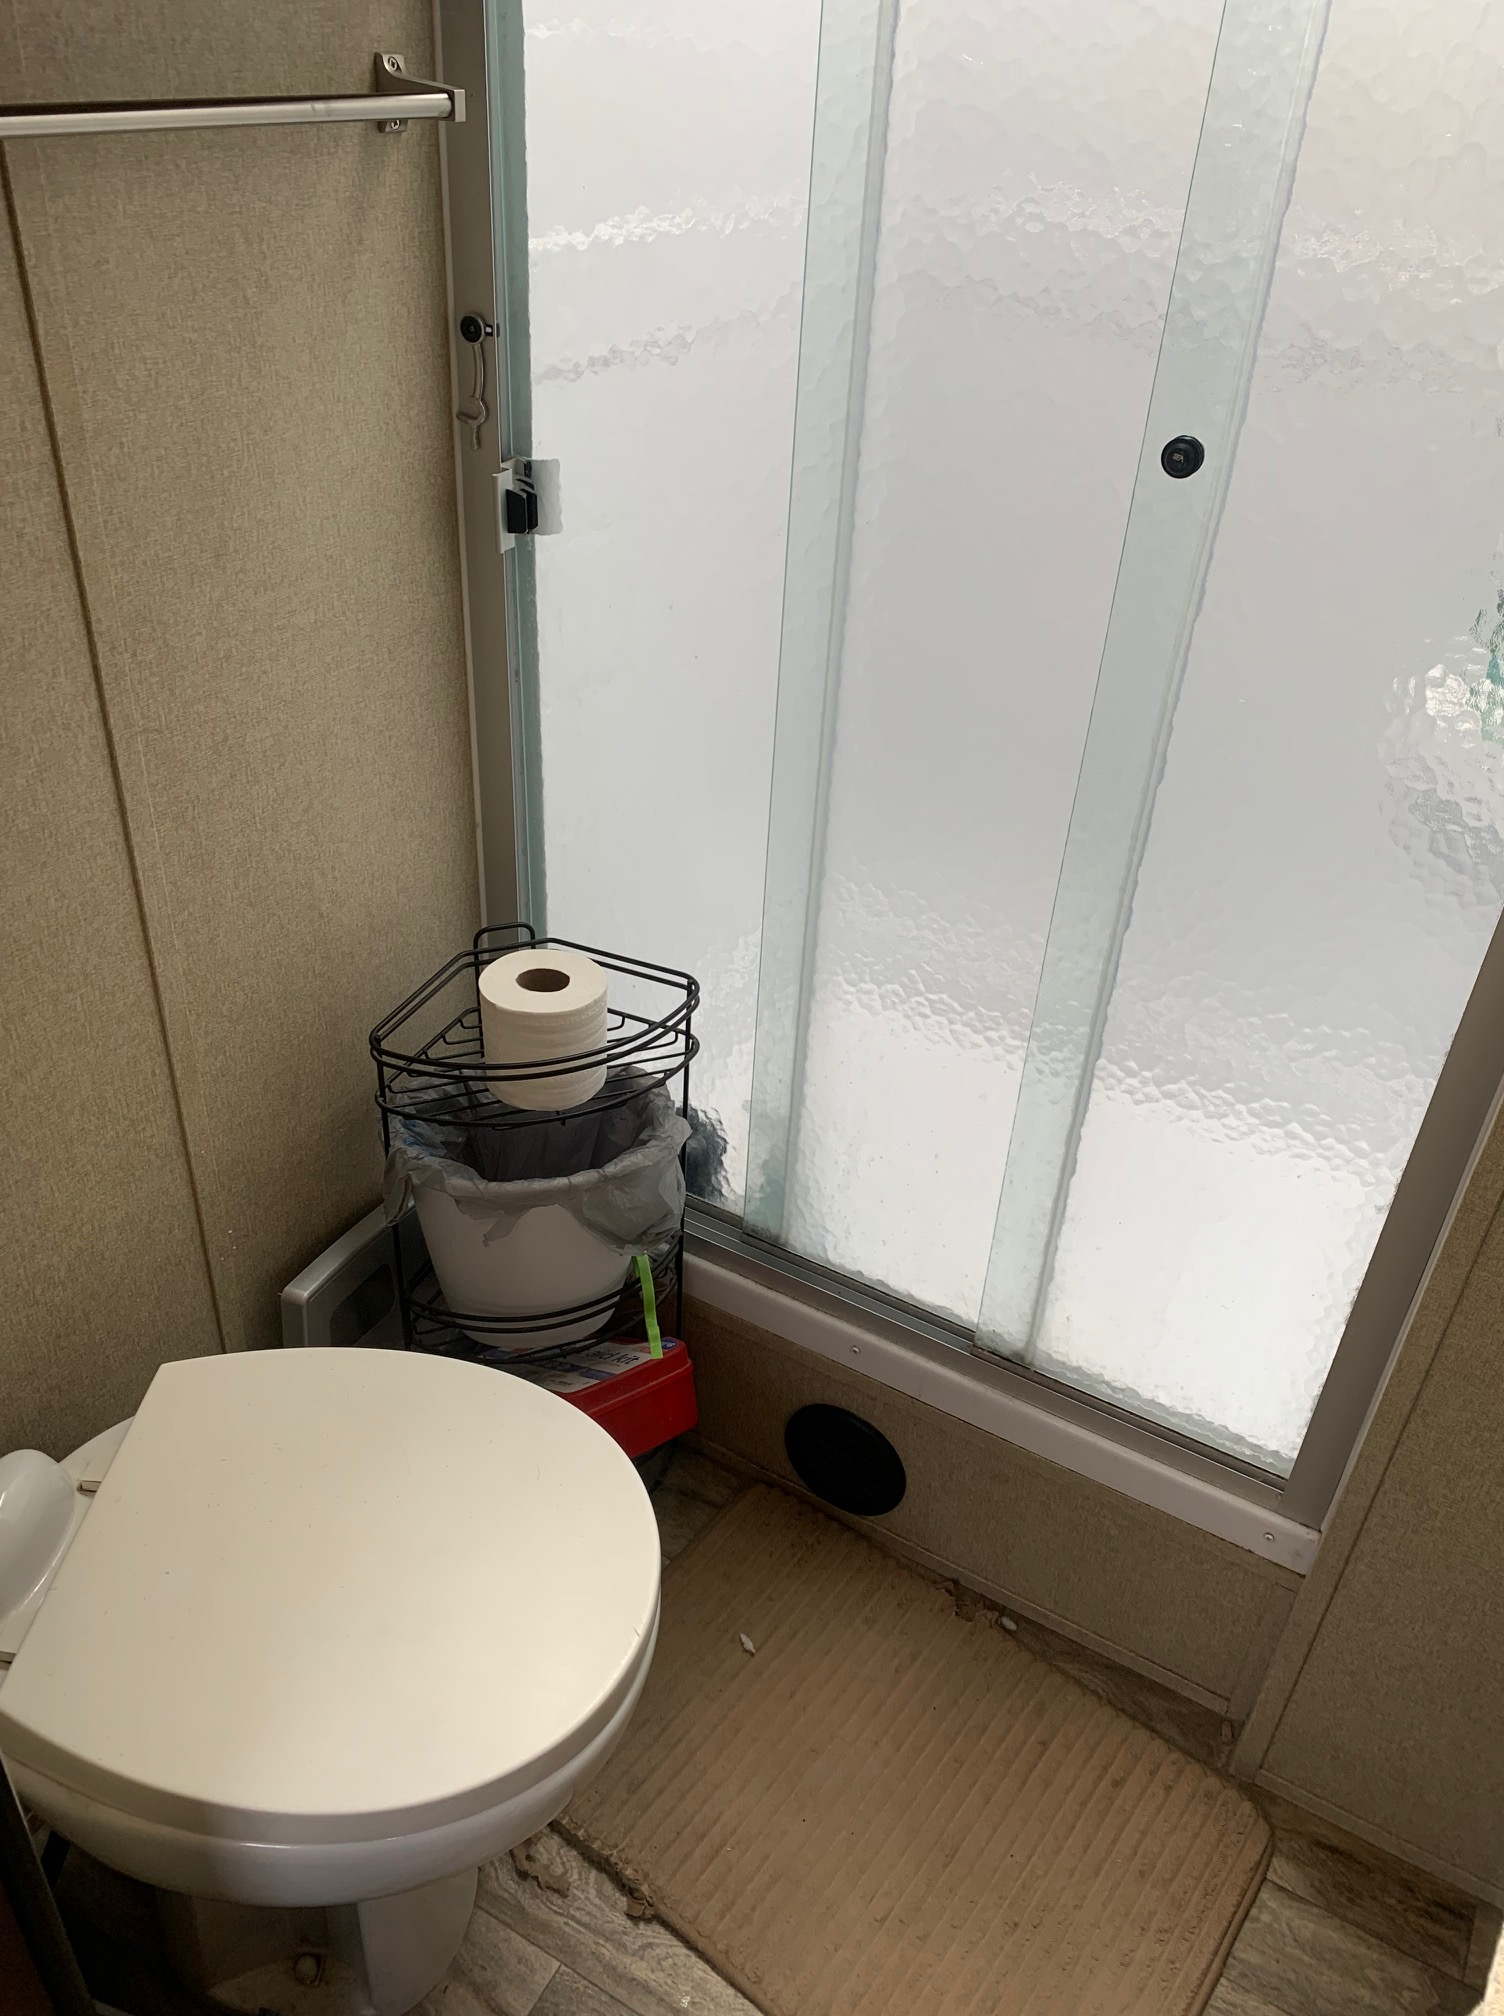 Can You Use the Bathroom in an RV While Driving